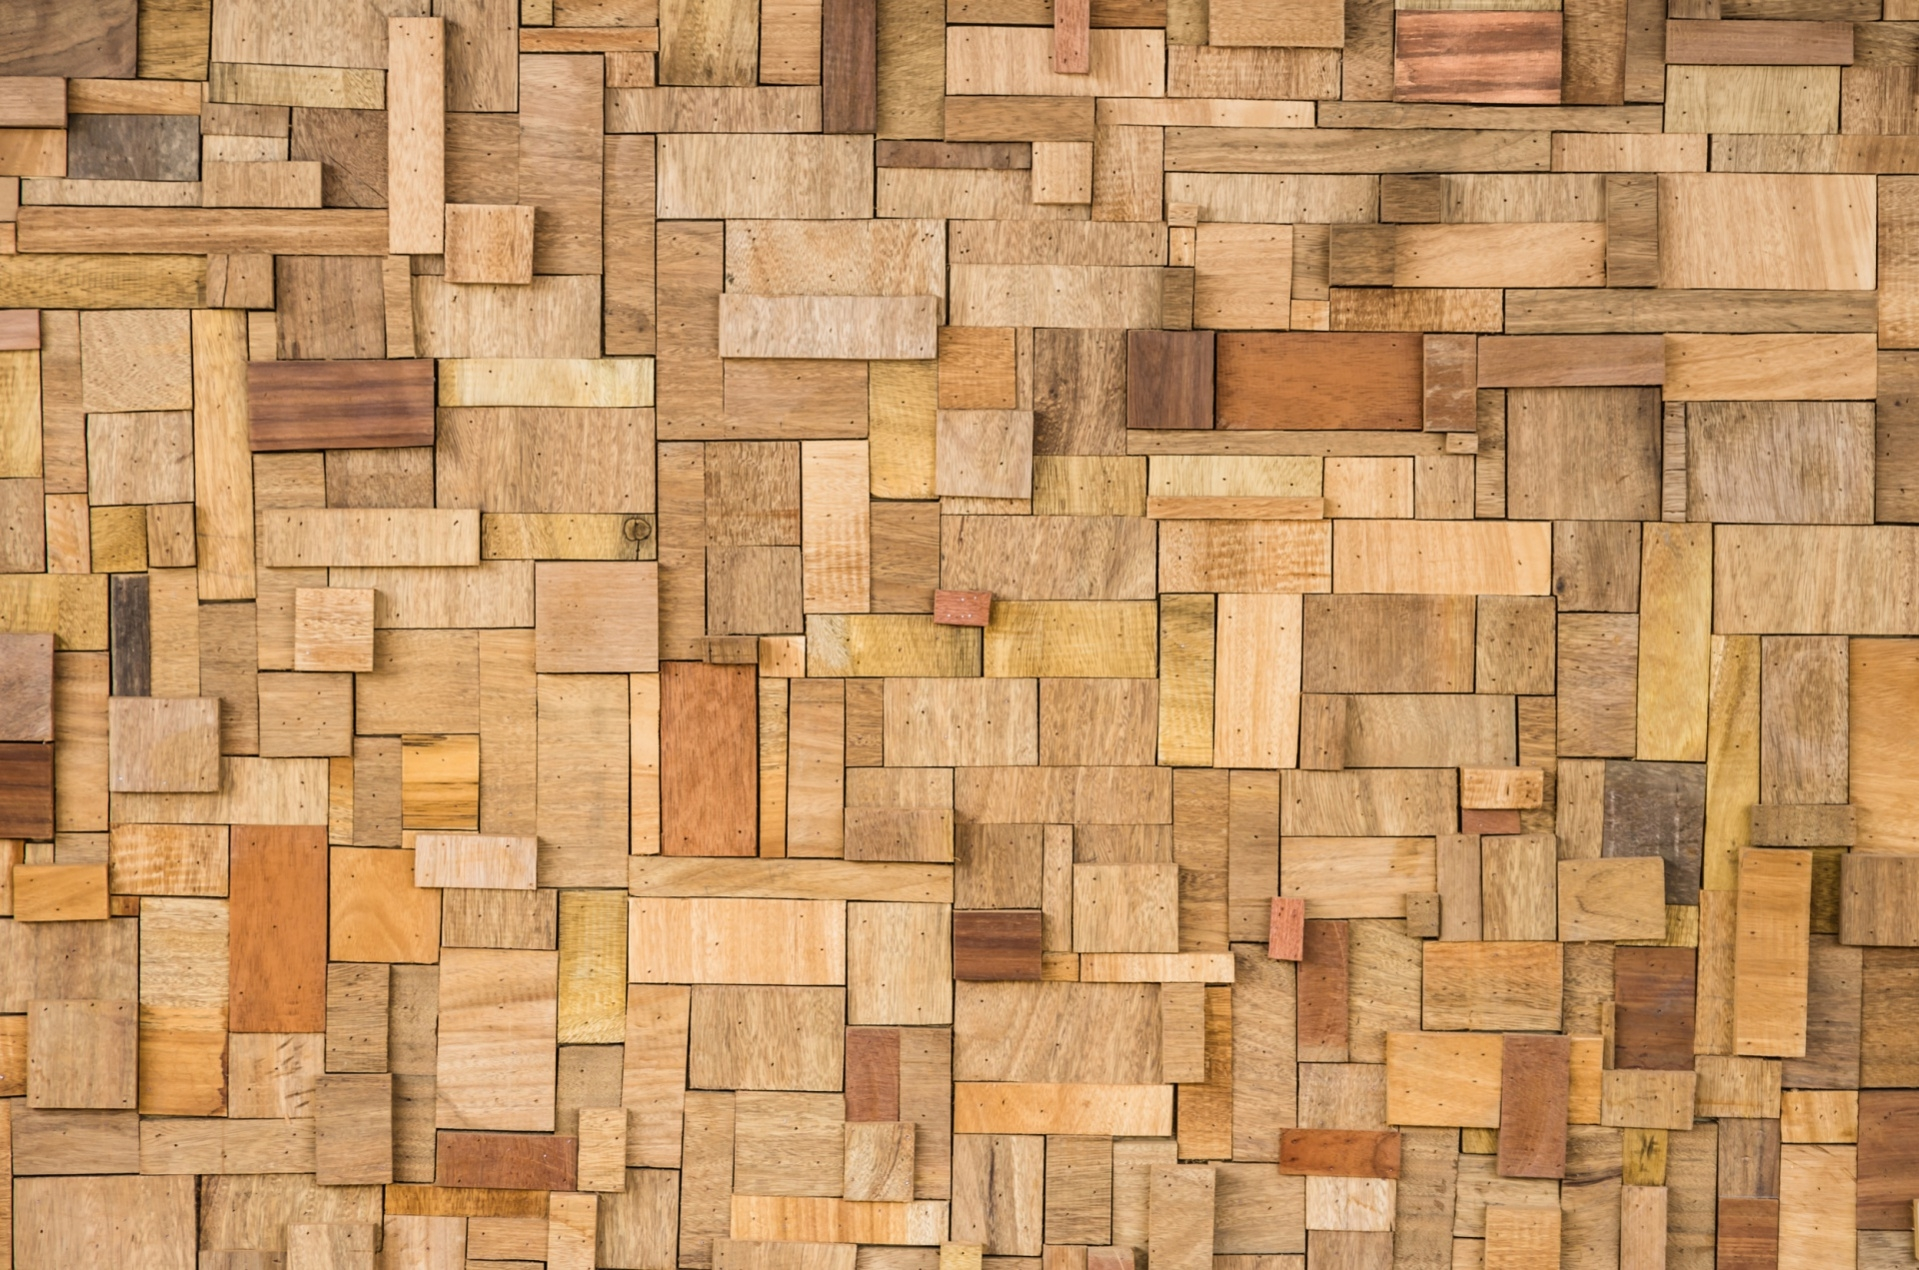 Download High Res Wood Background Wallpaper